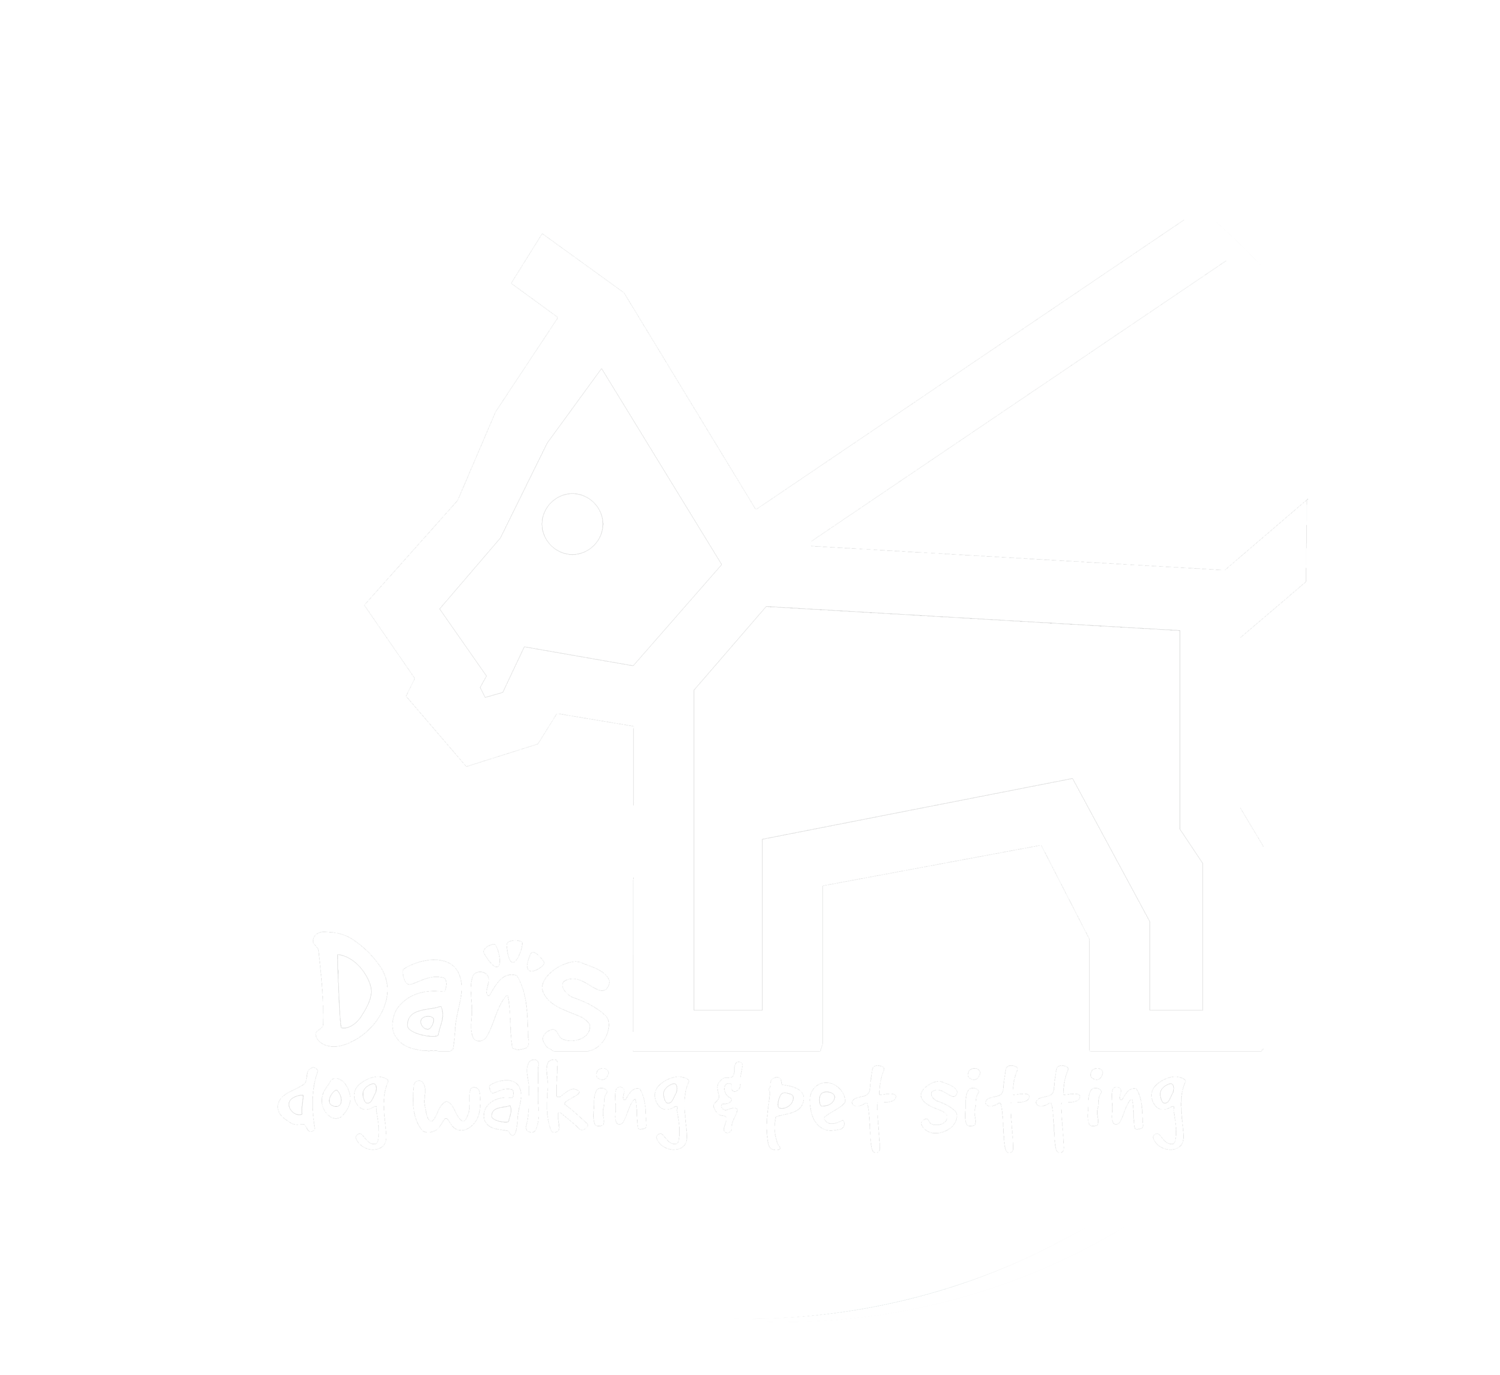 Dan's Dog Walking and Pet Sitting